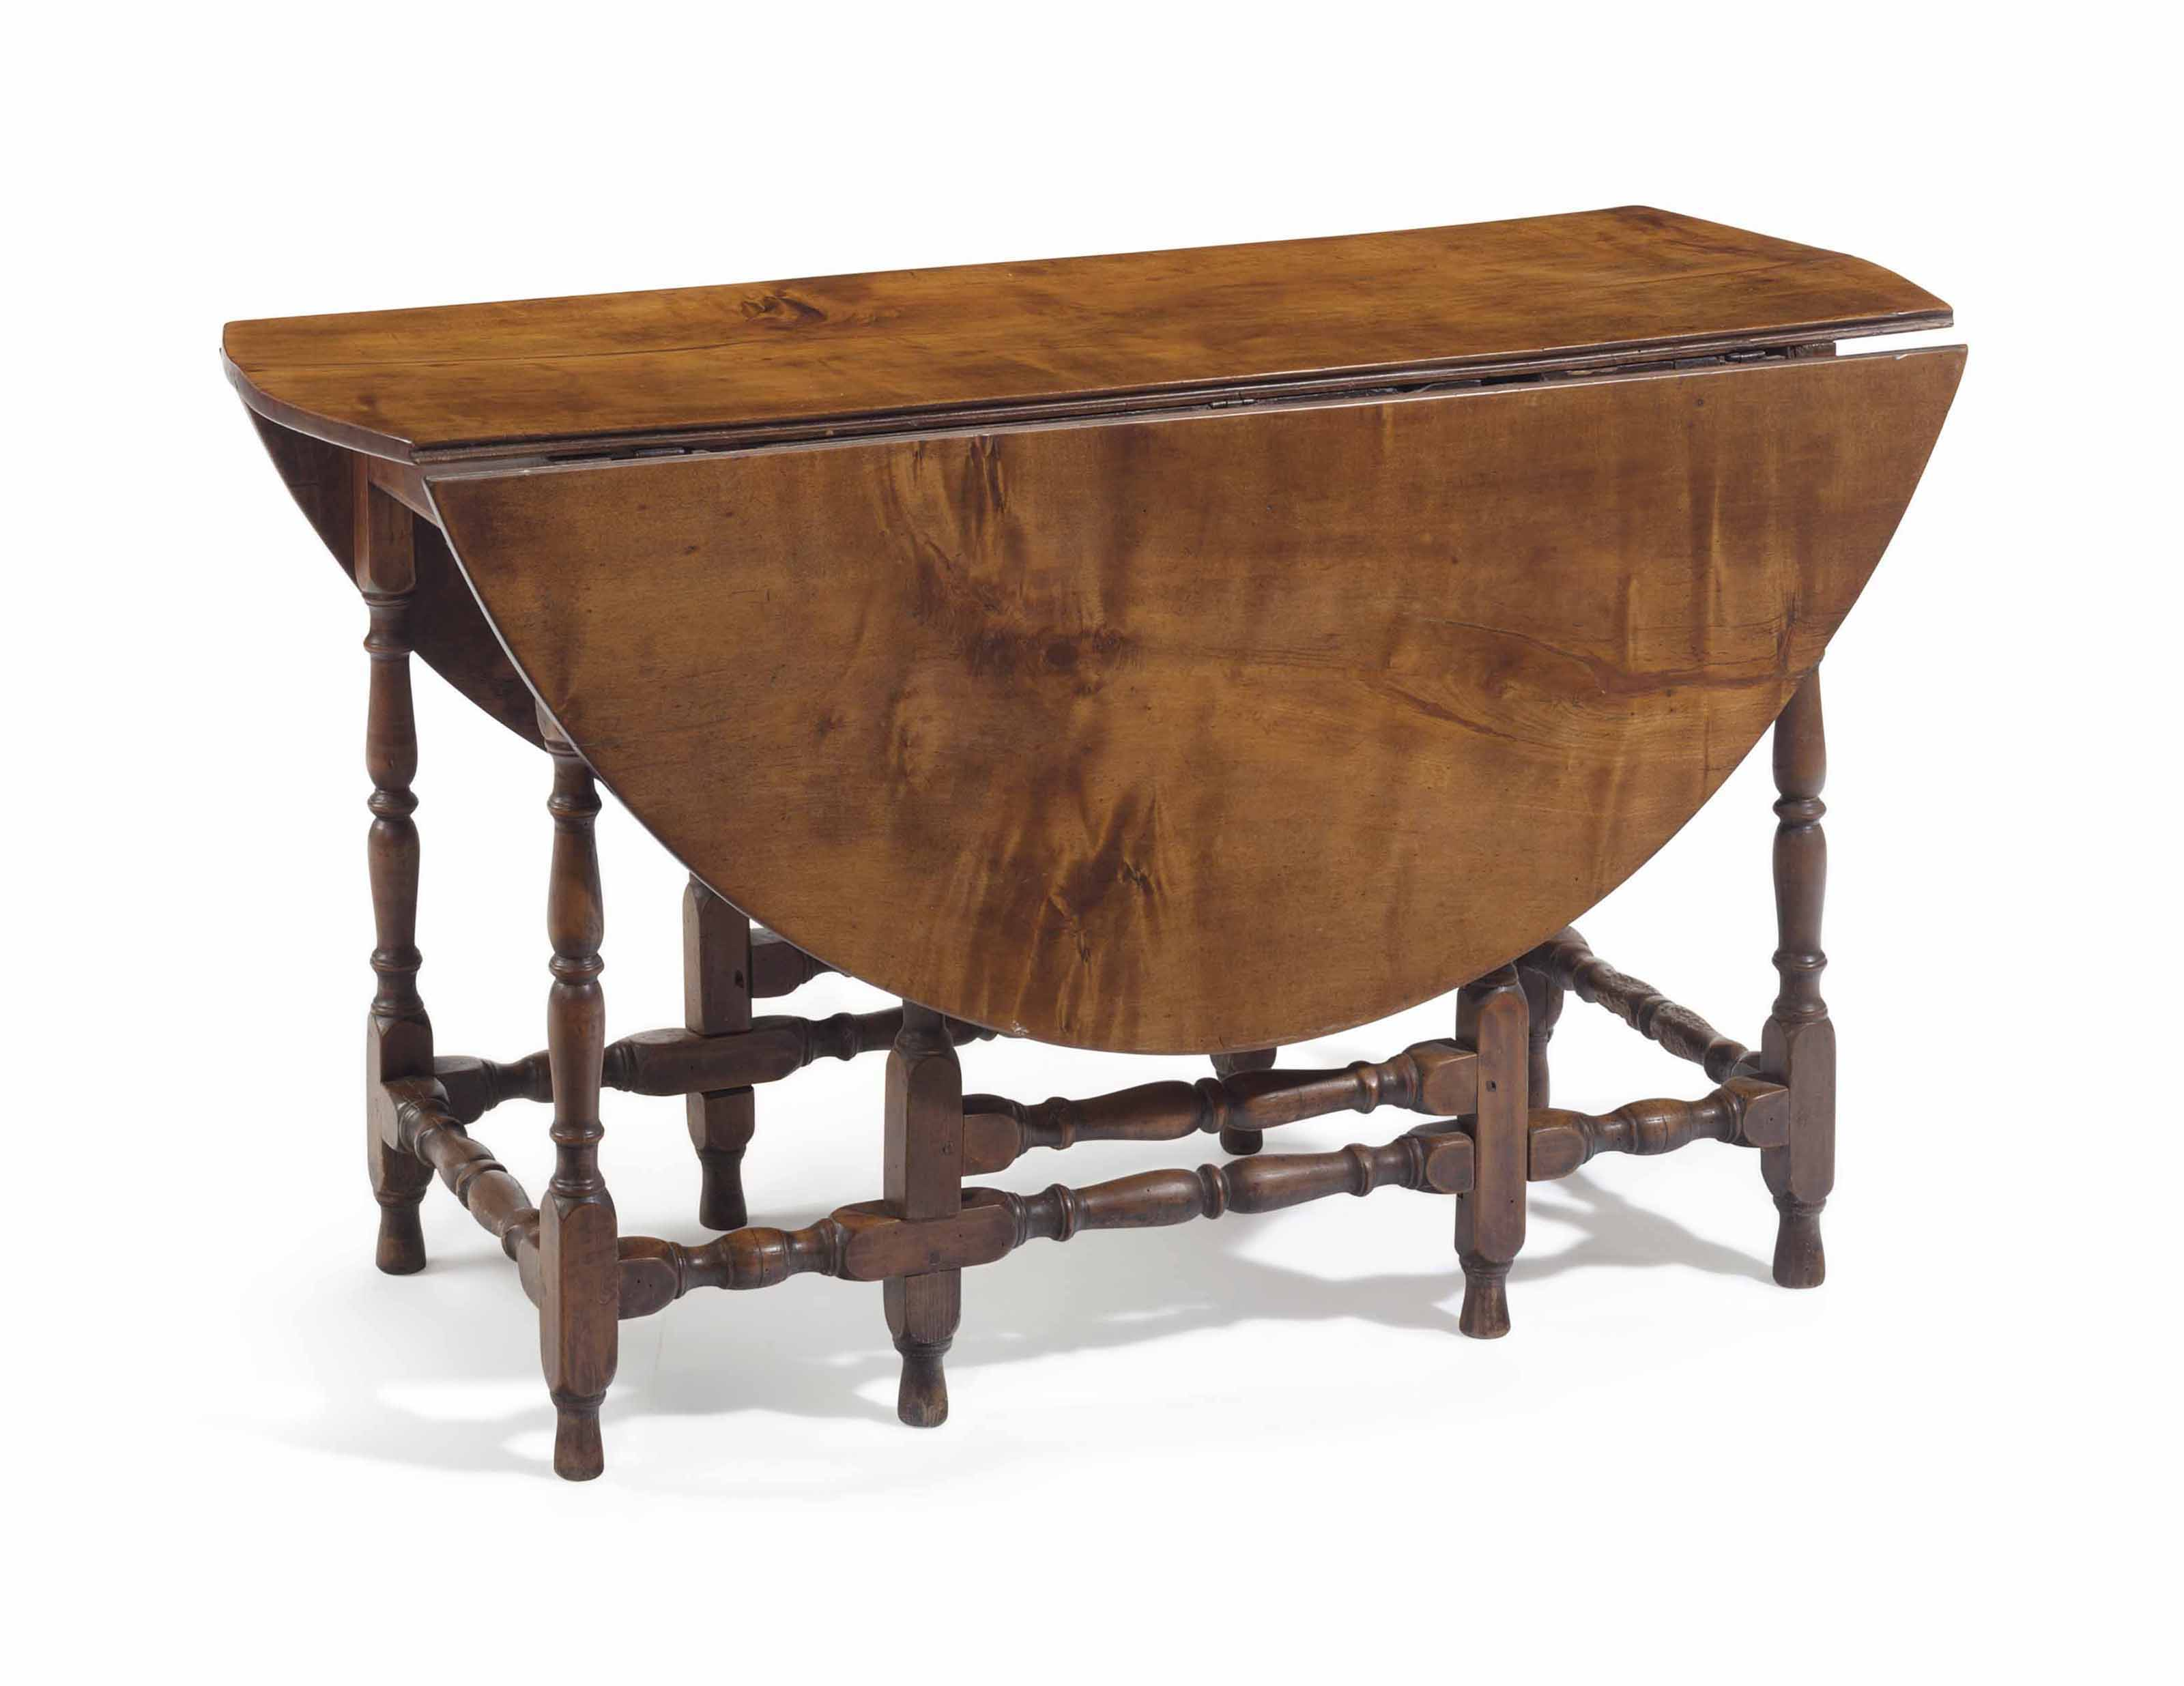 A William And Mary Maple Gate Leg Table, New England, 1720 1740